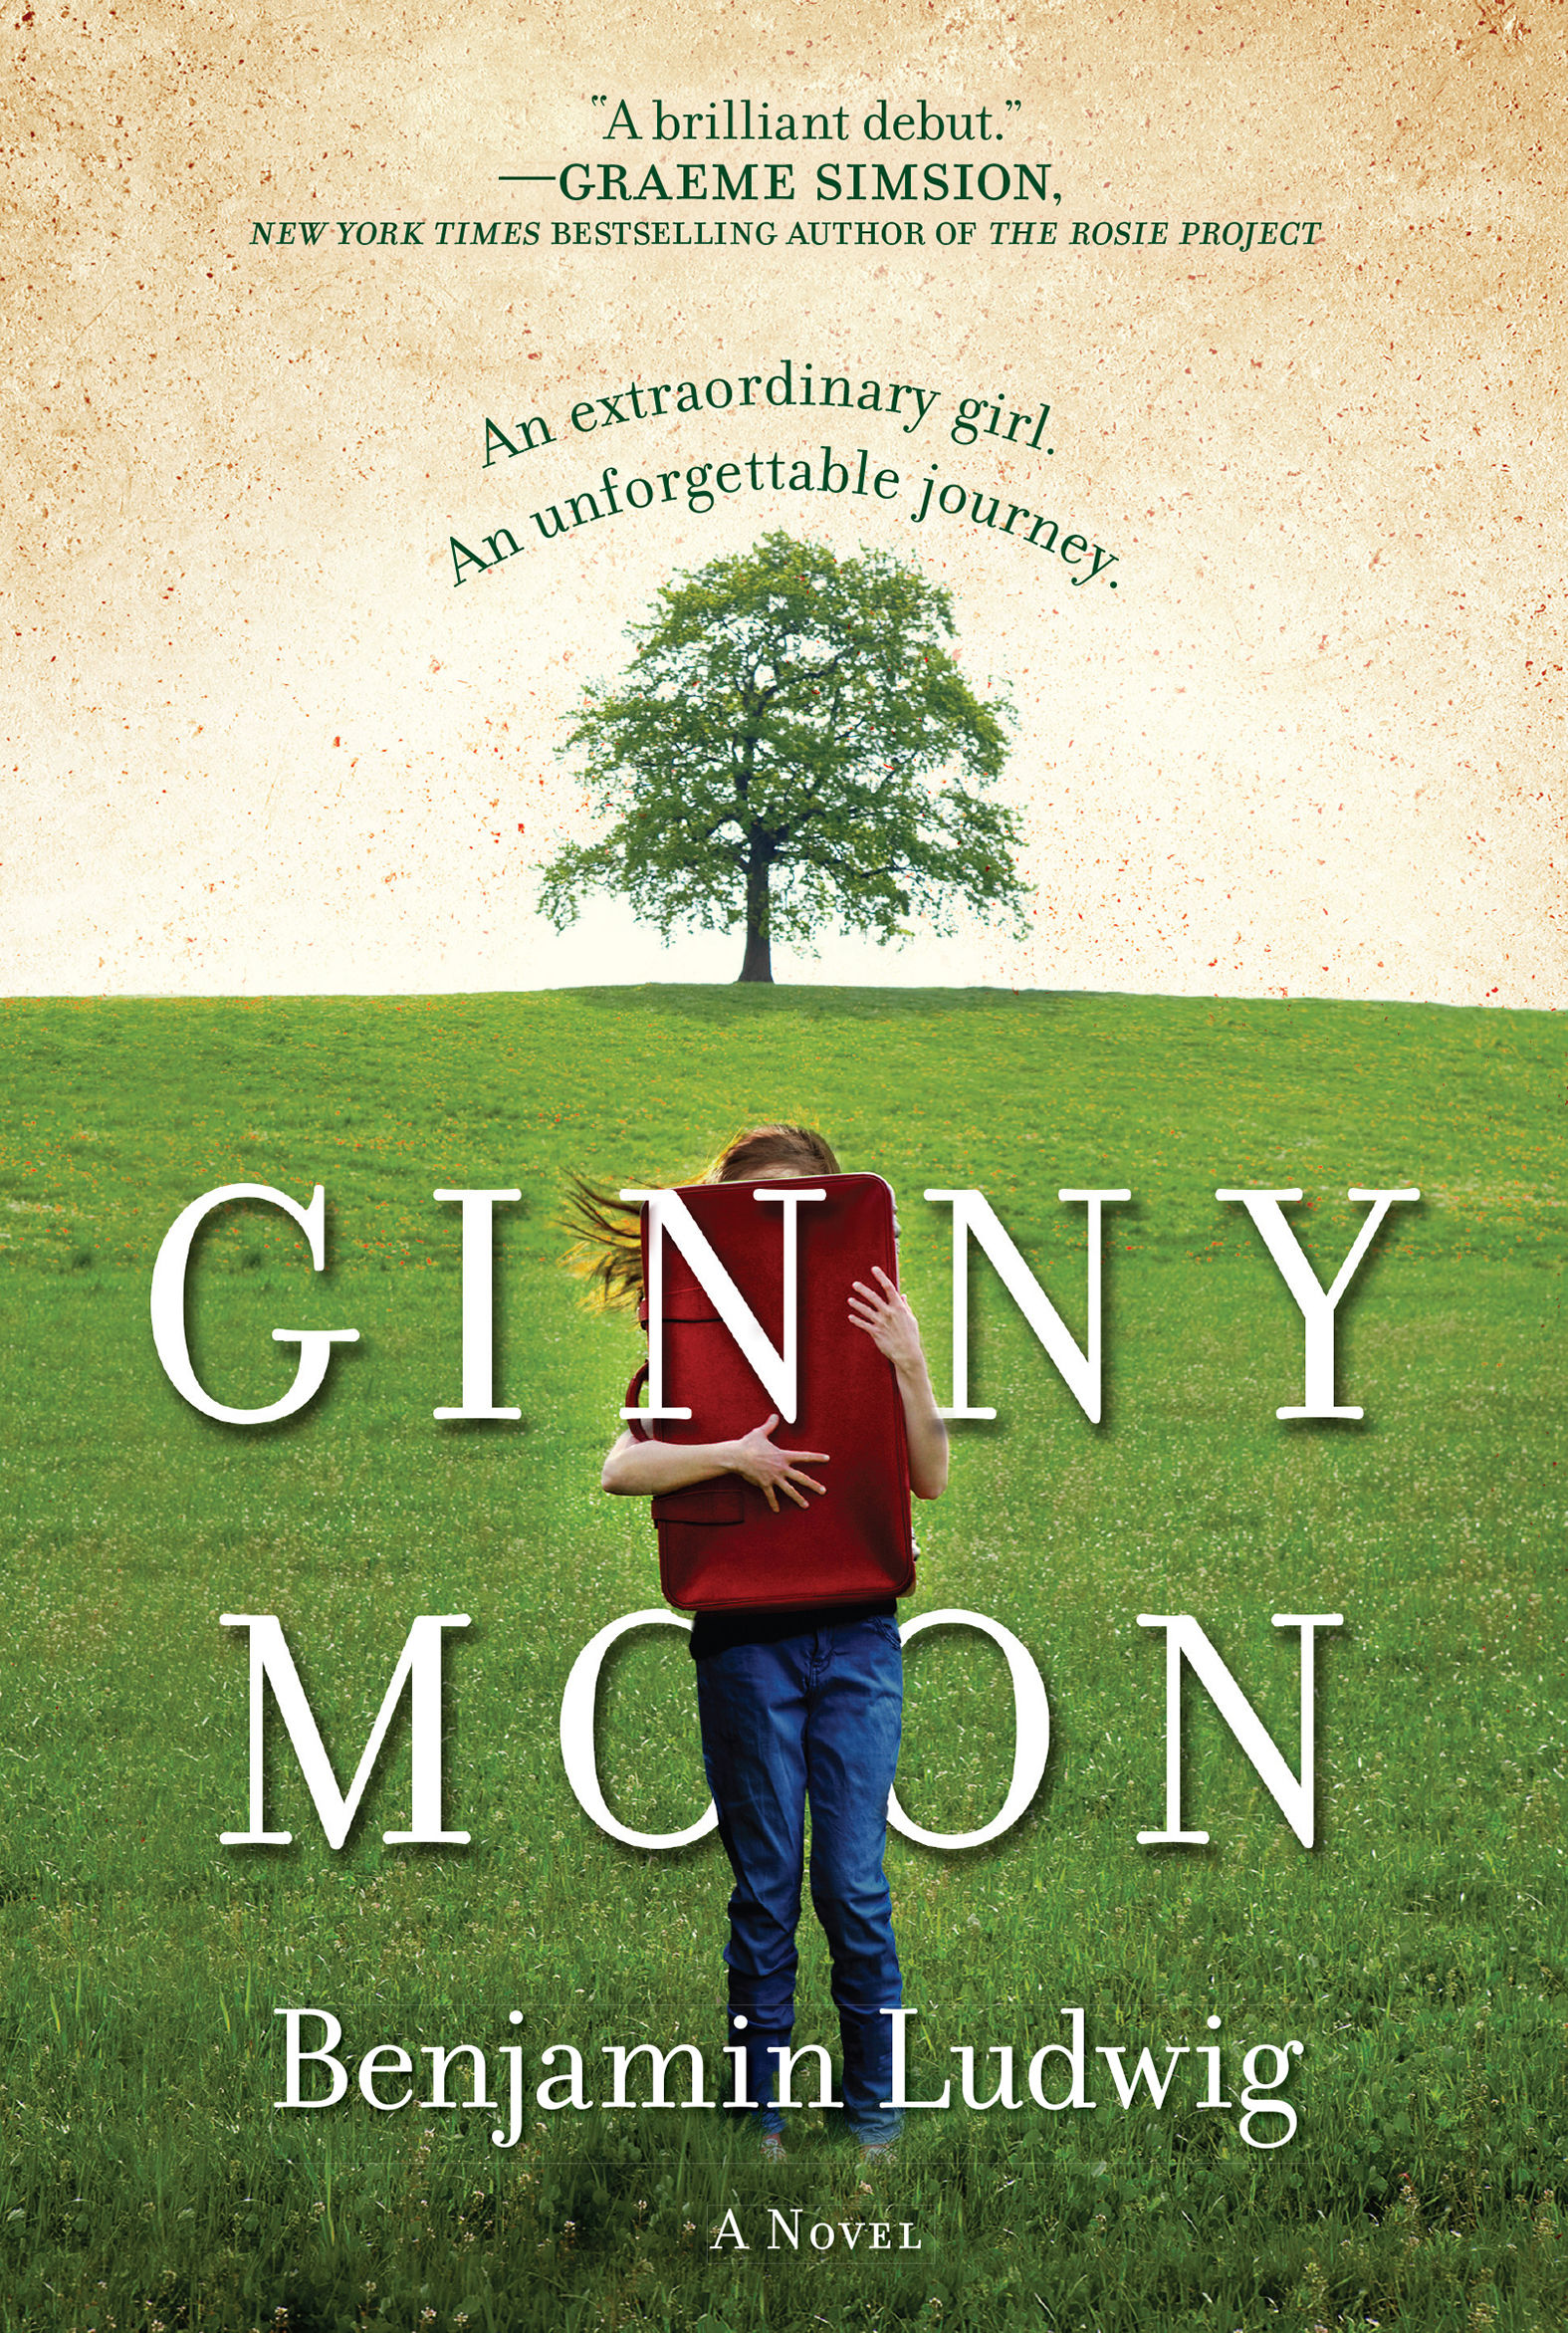 Ginny Moon alt cover 2 high res.jpg